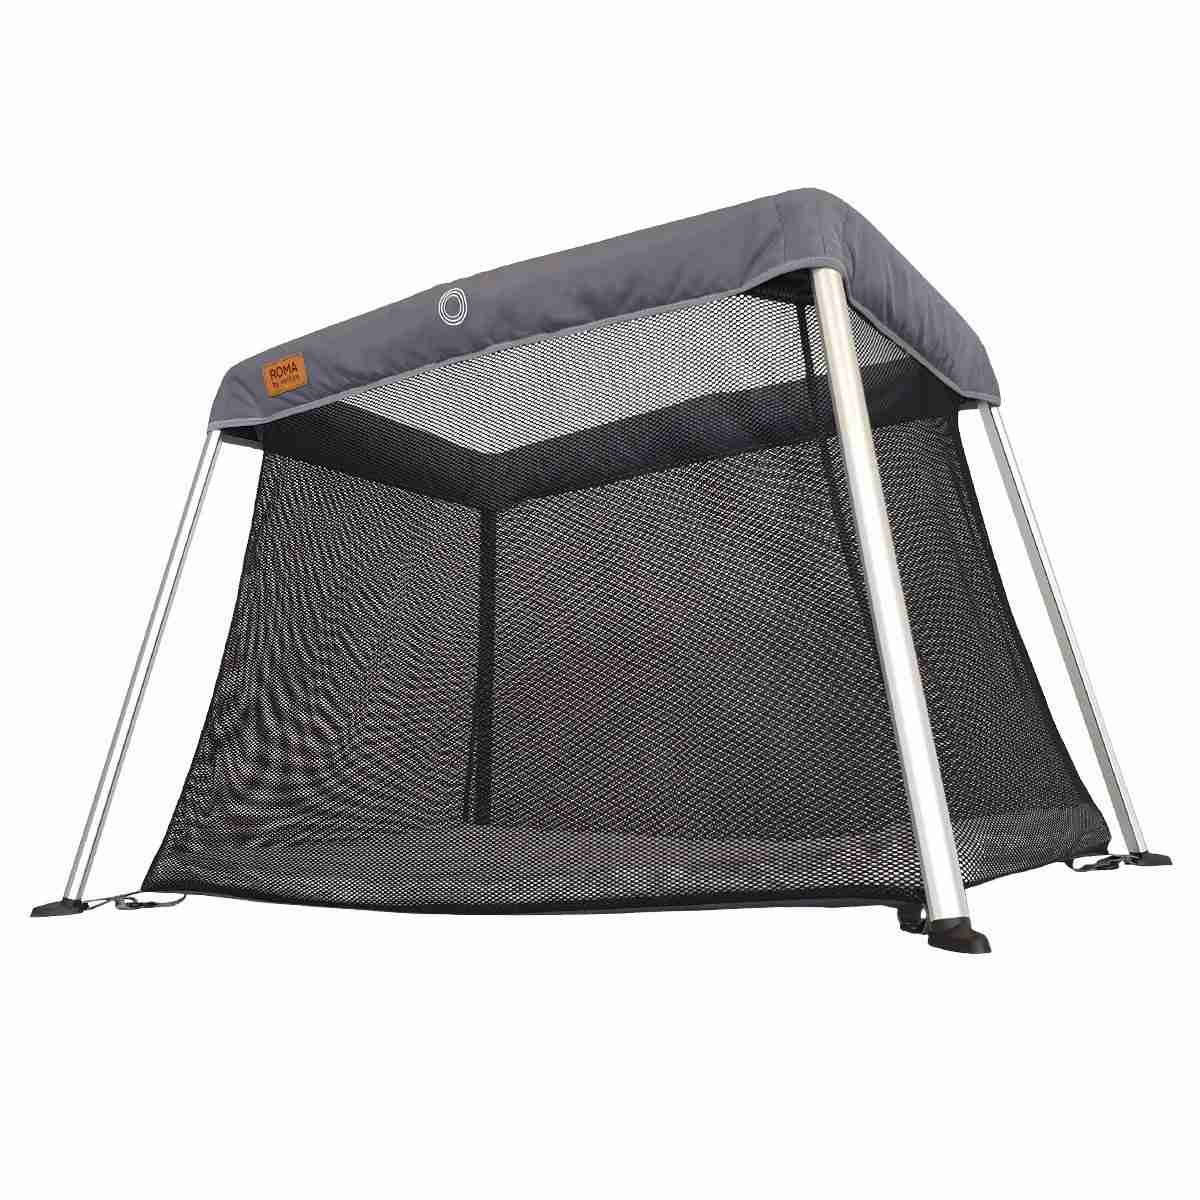 Mesh sides give the travel cot great visibility and ventilation